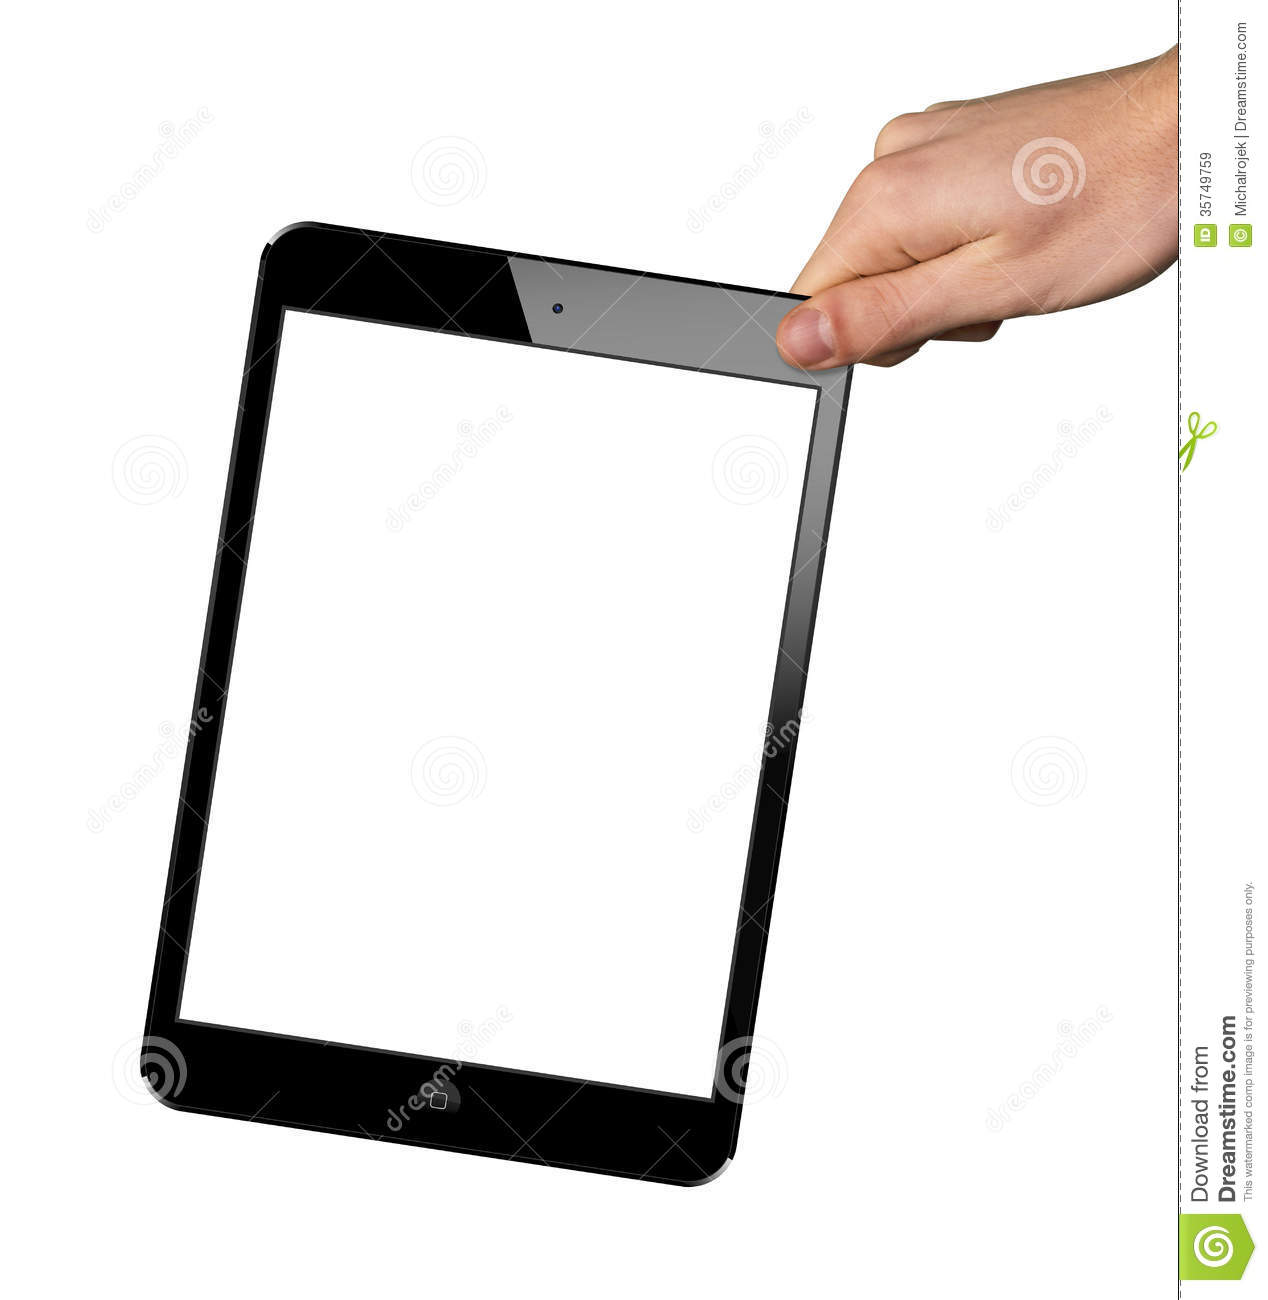 A new Ipad in hand